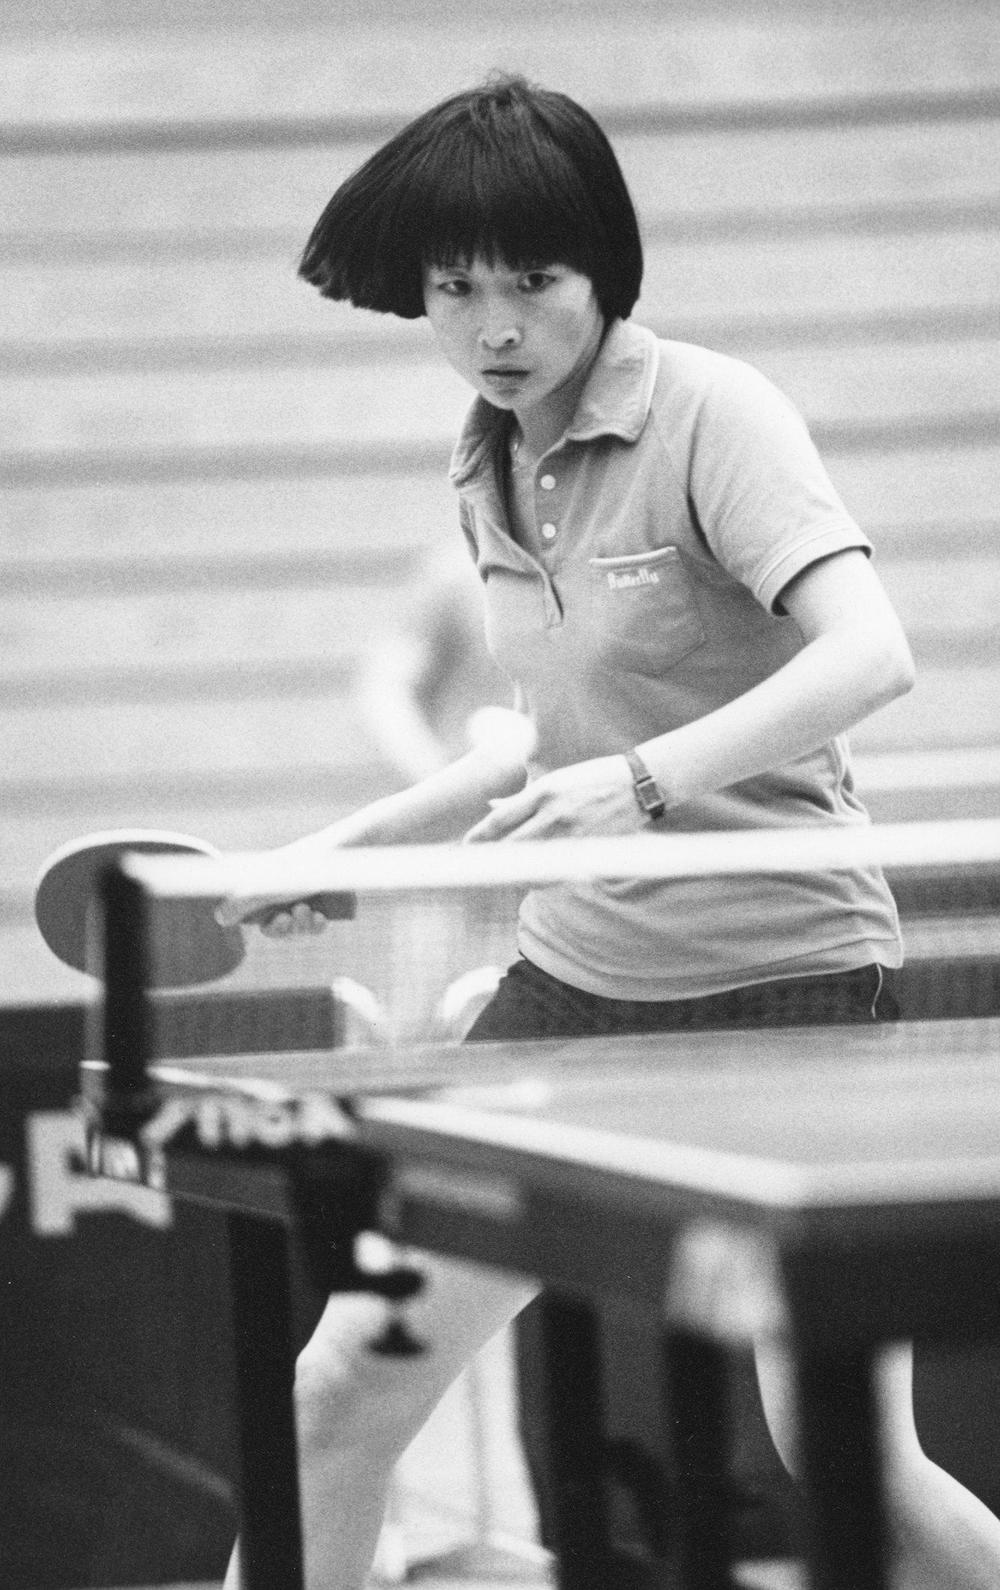 Insook Bhushan, a soft-spoken accountant in the Colorado Department of Military and Veterans Affairs budget office in Centennial, Colo., is actually a two-time Olympian and a U.S. national table tennis champion..